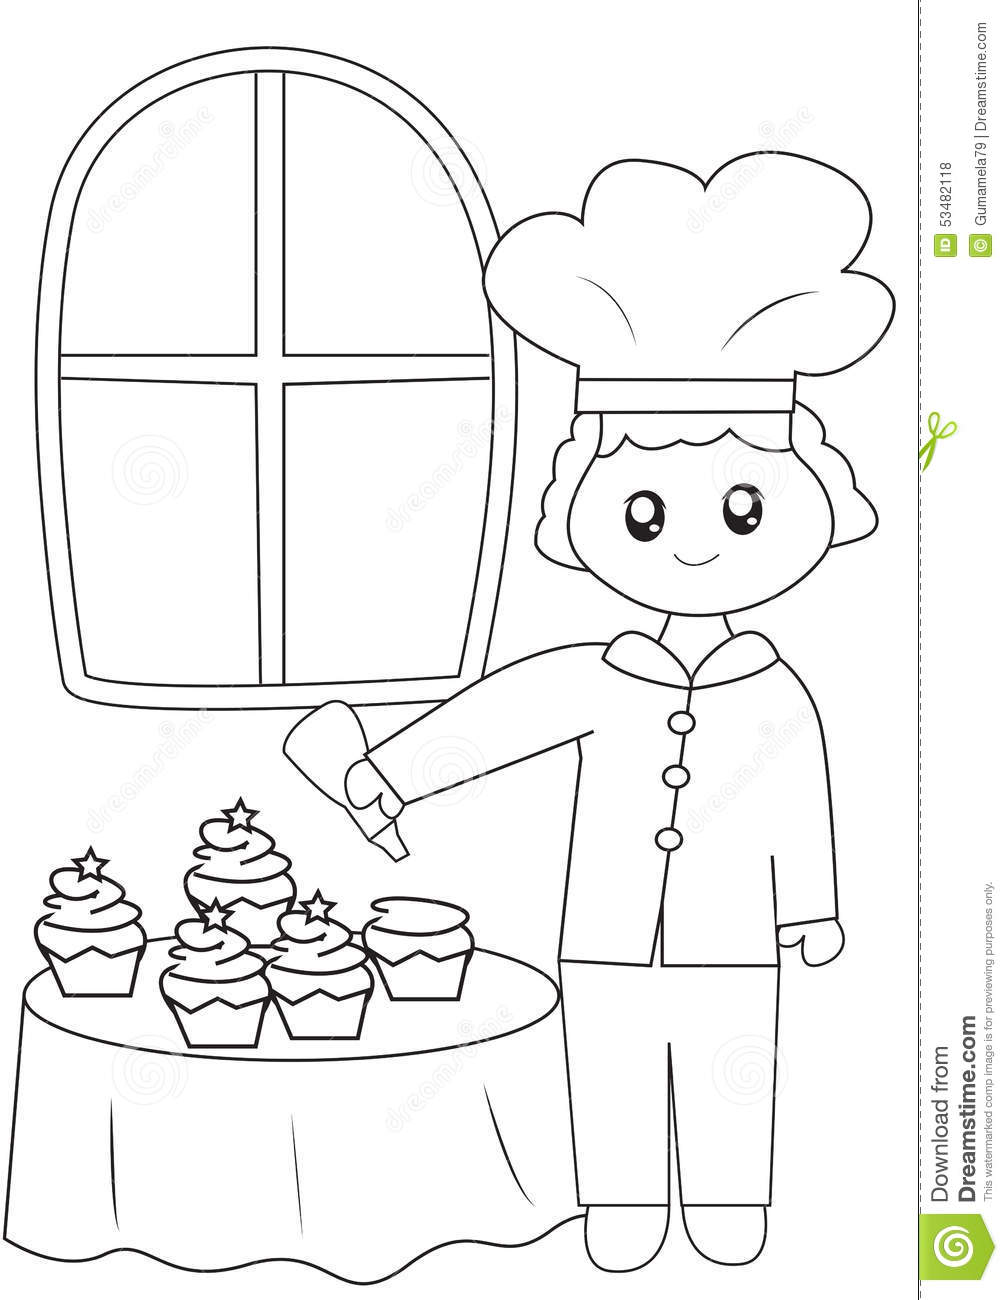 the chef with his cupcakes coloring page stock illustration